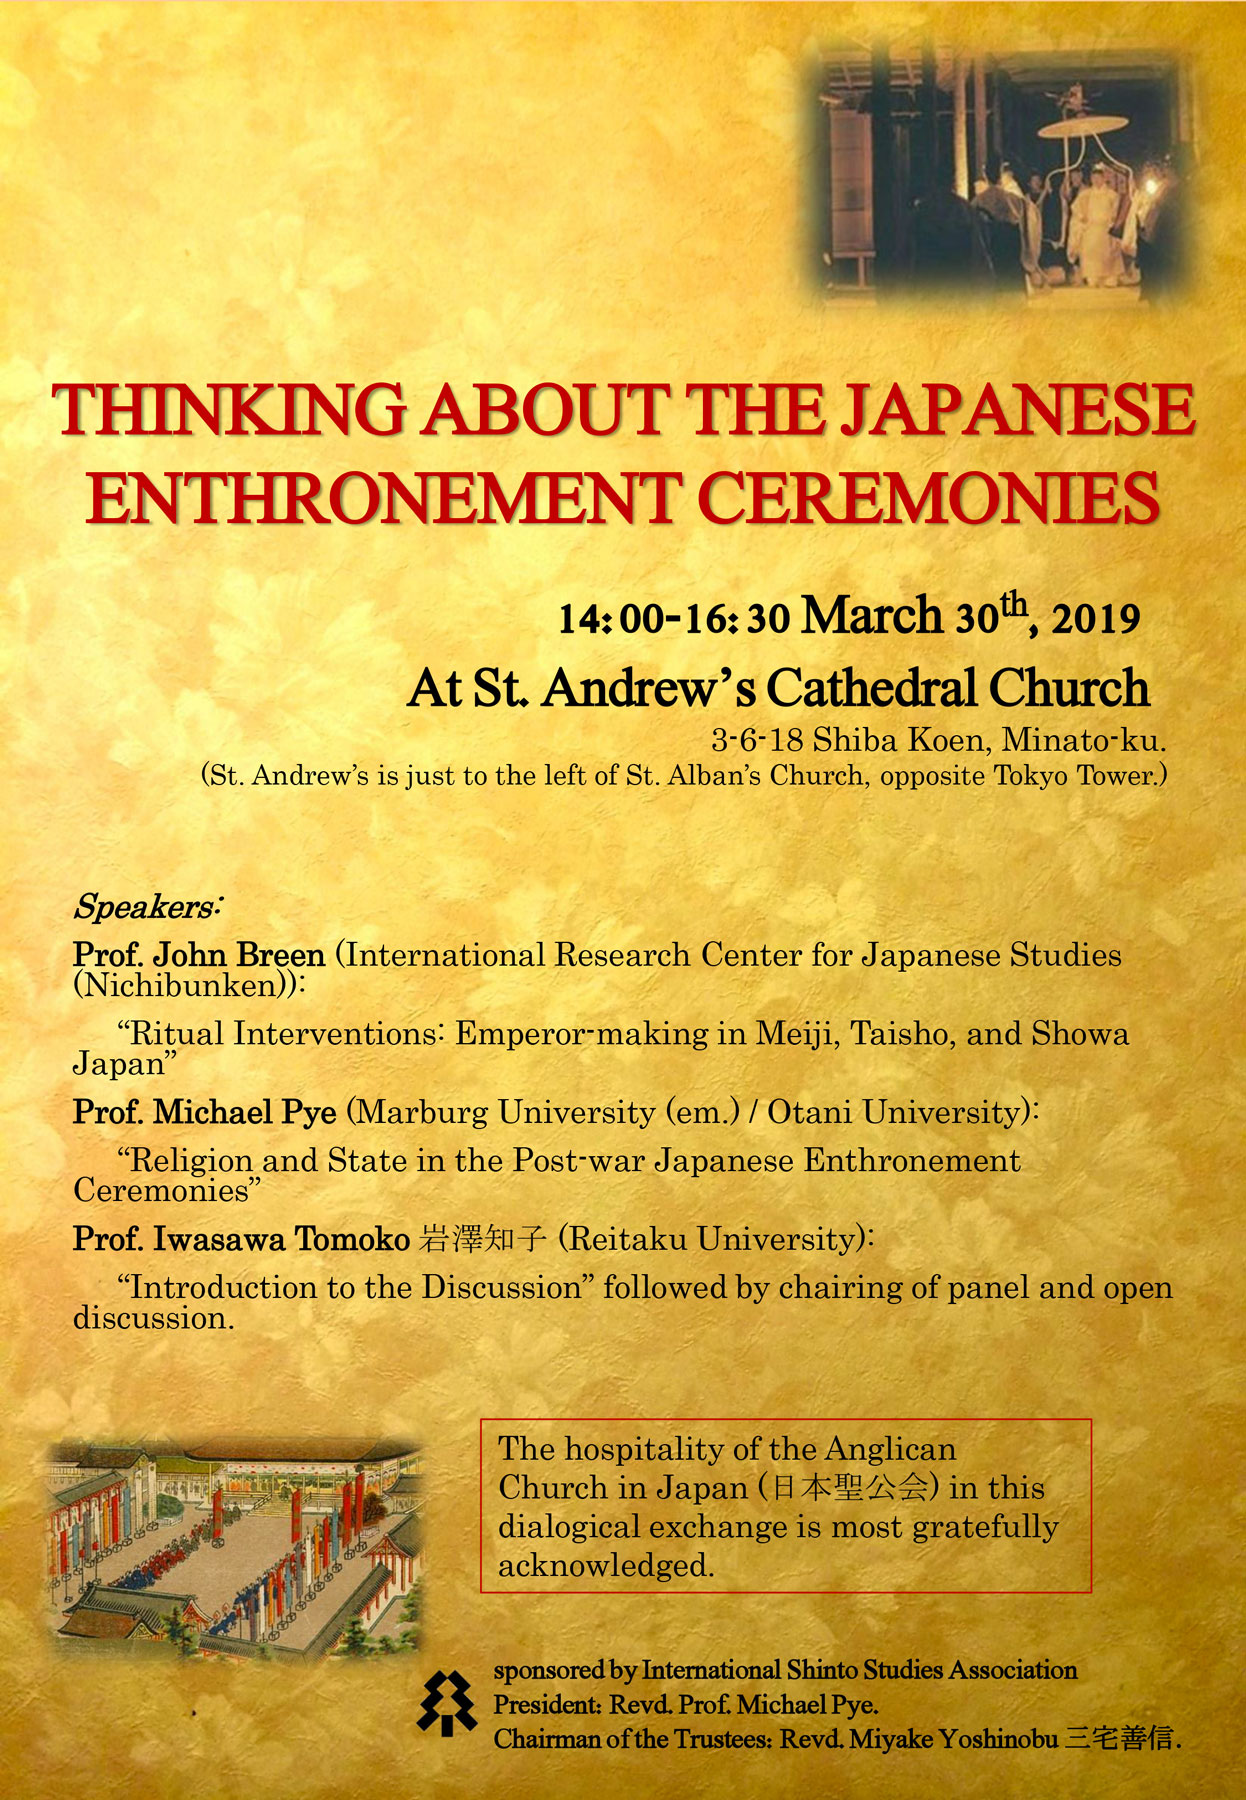 THINKING ABOUT THE JAPANESE ENTHRONEMENT CEREMONIES